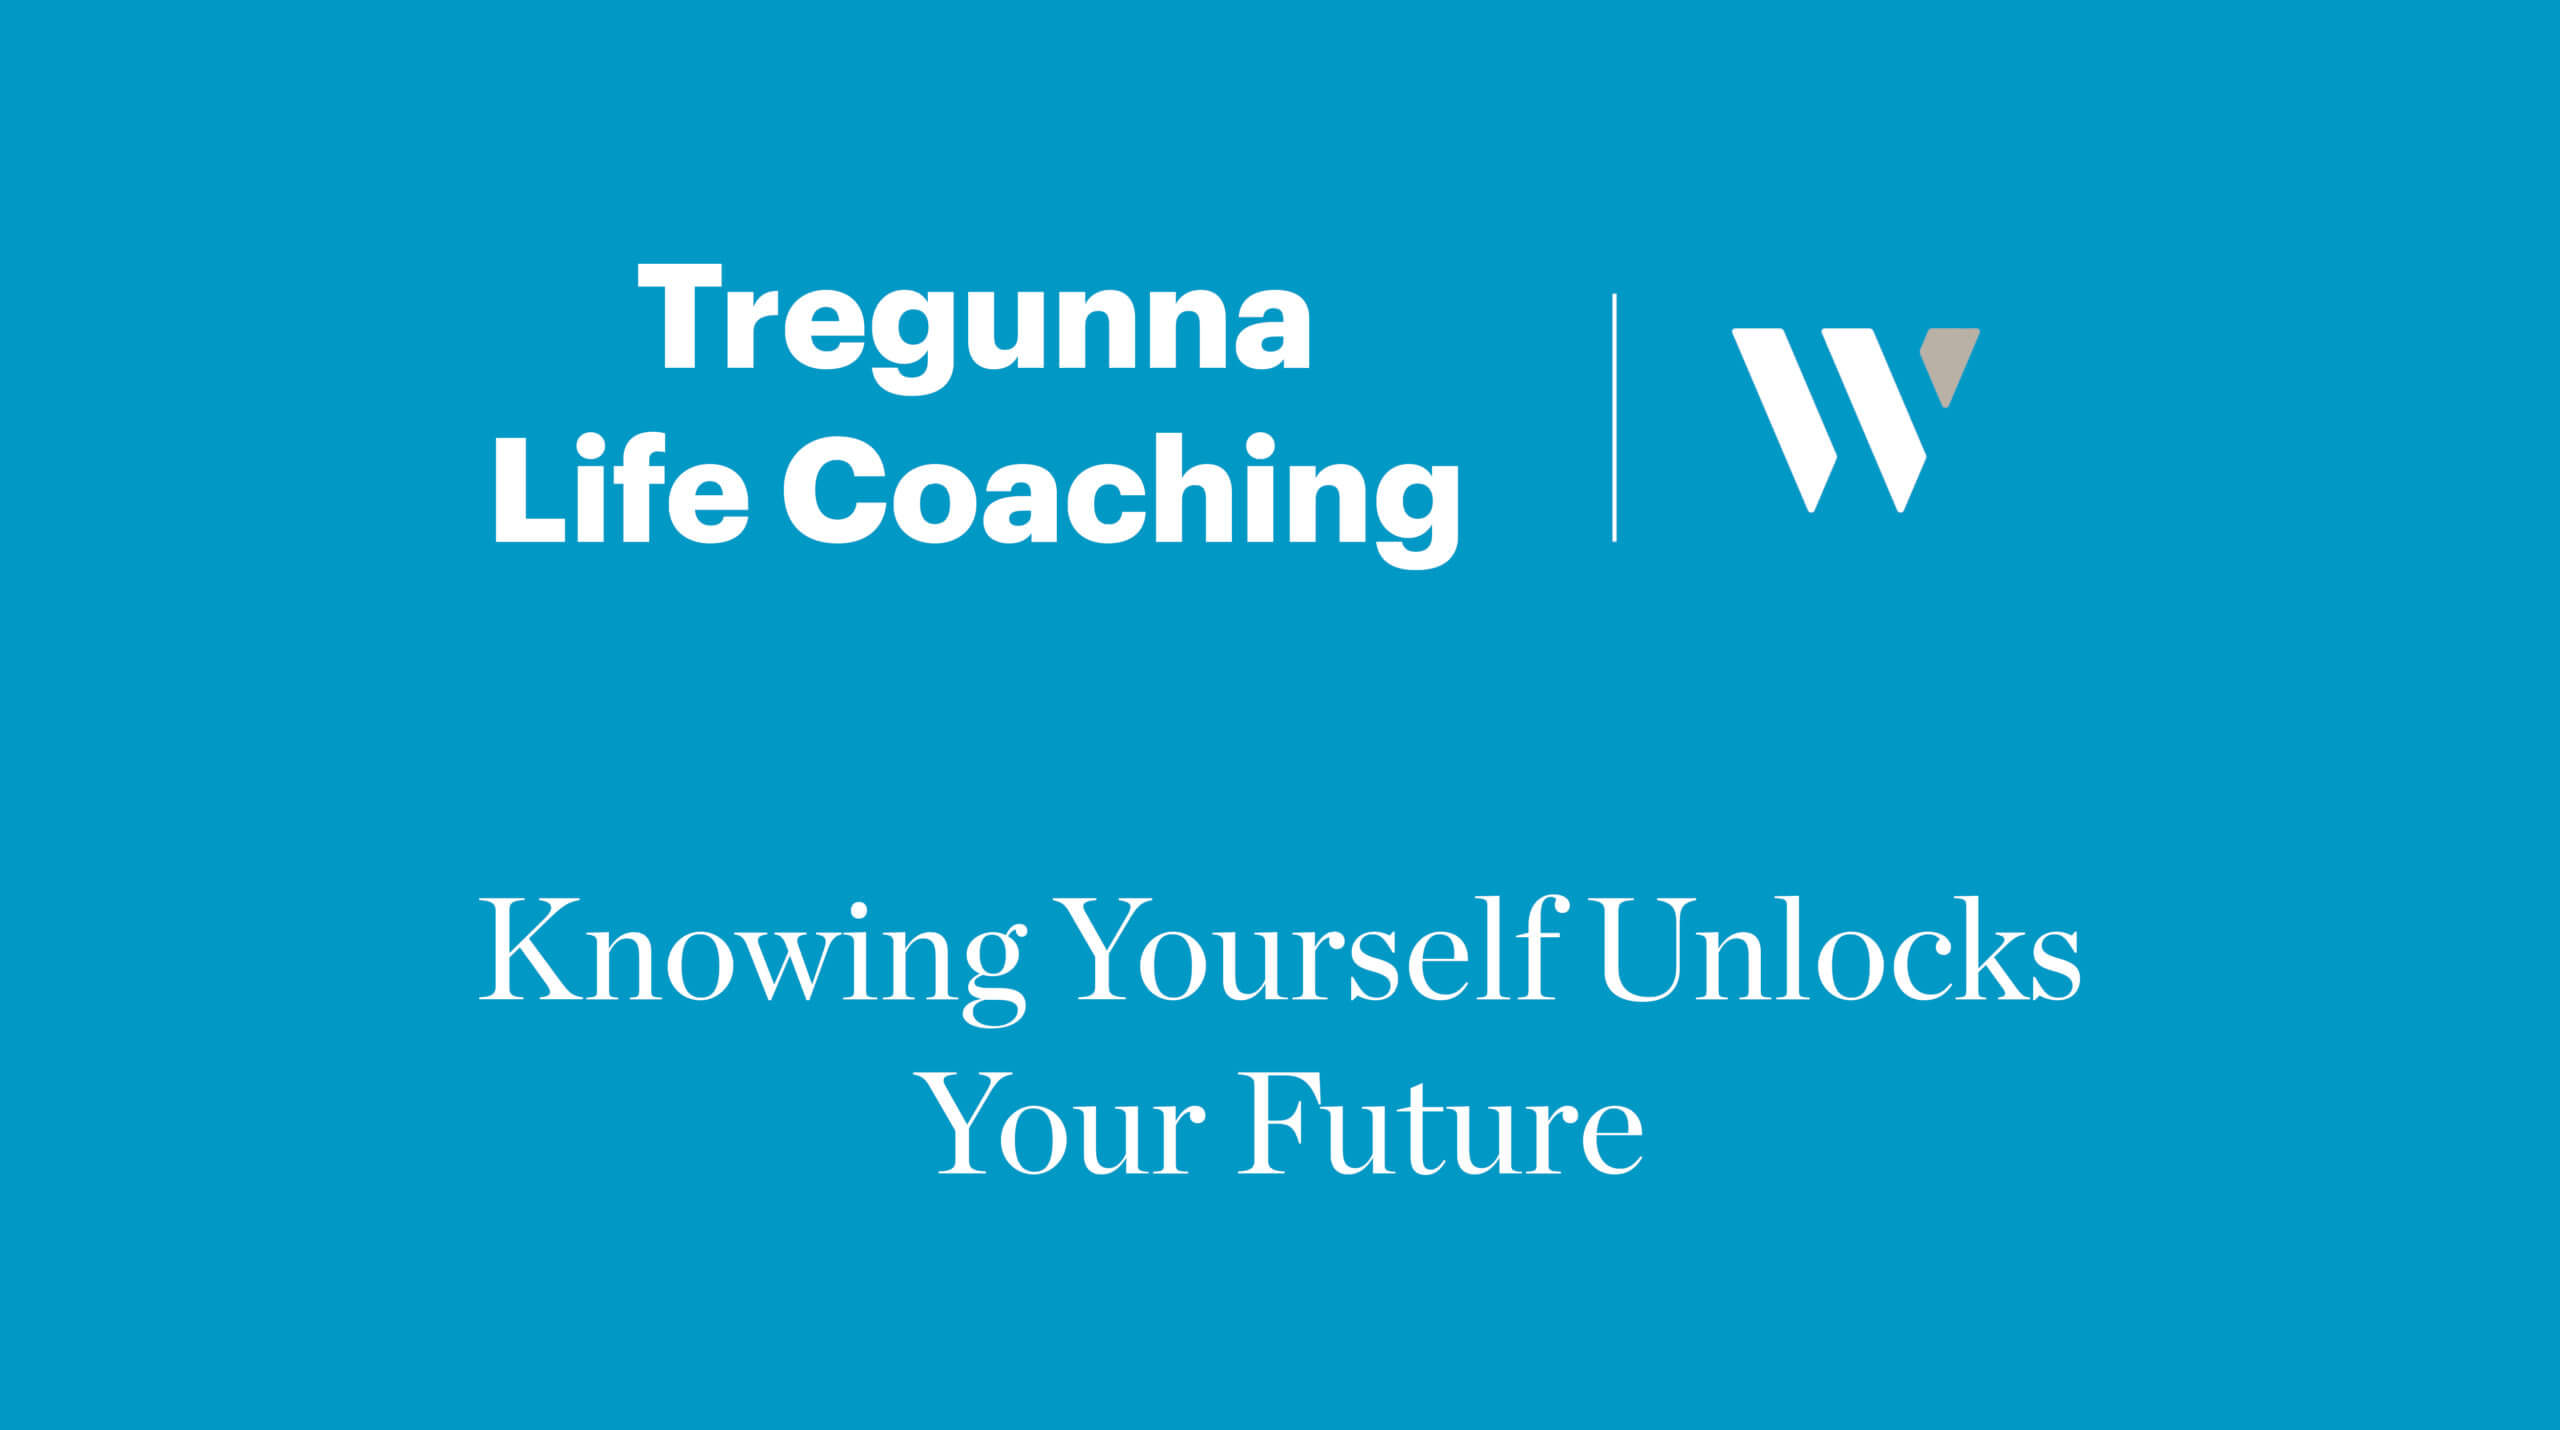 Knowing Yourself Unlocks Your Future